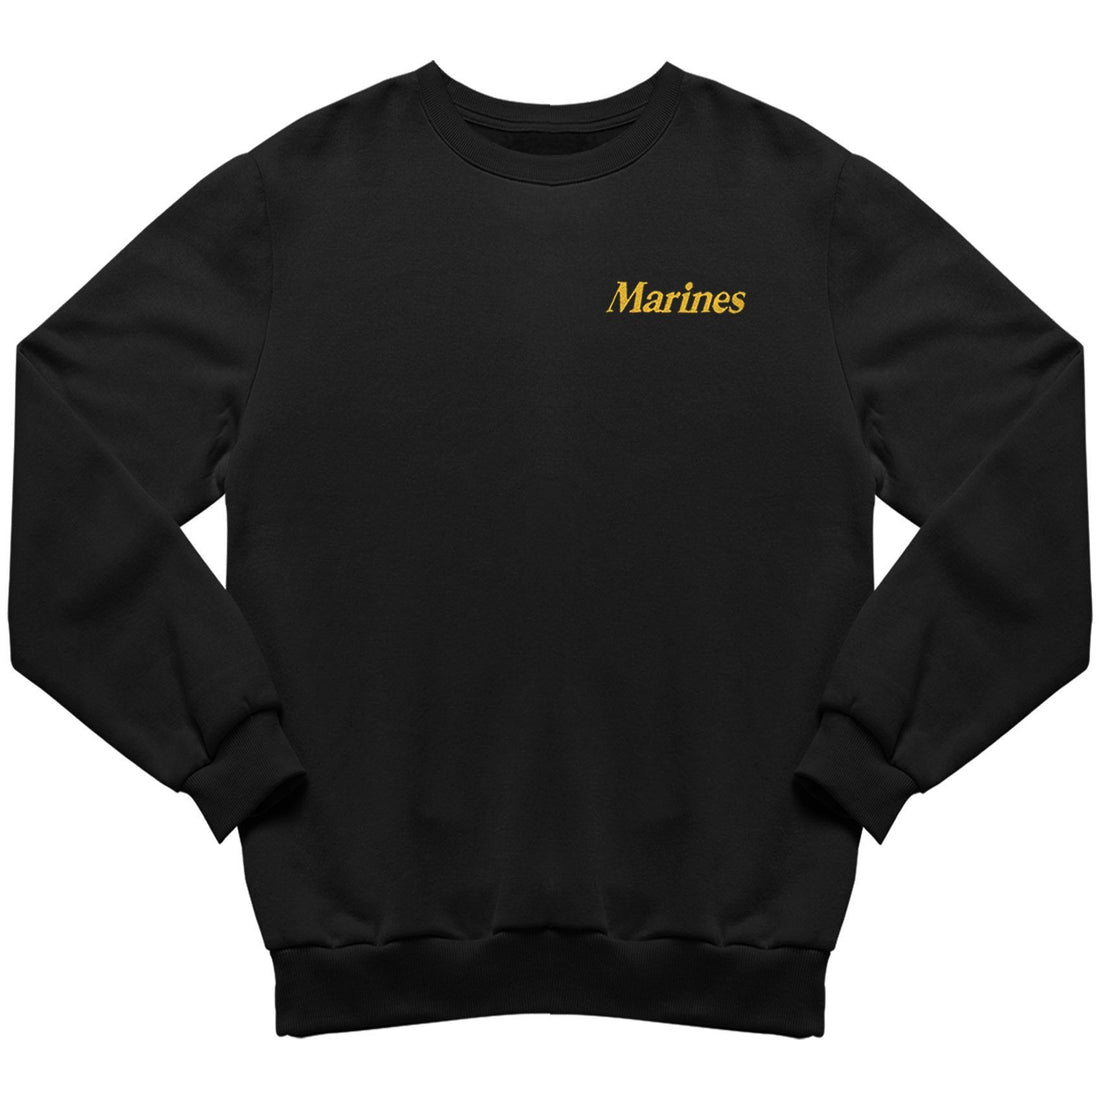 Marines Embroidered Sweatshirt - Marine Corps Direct